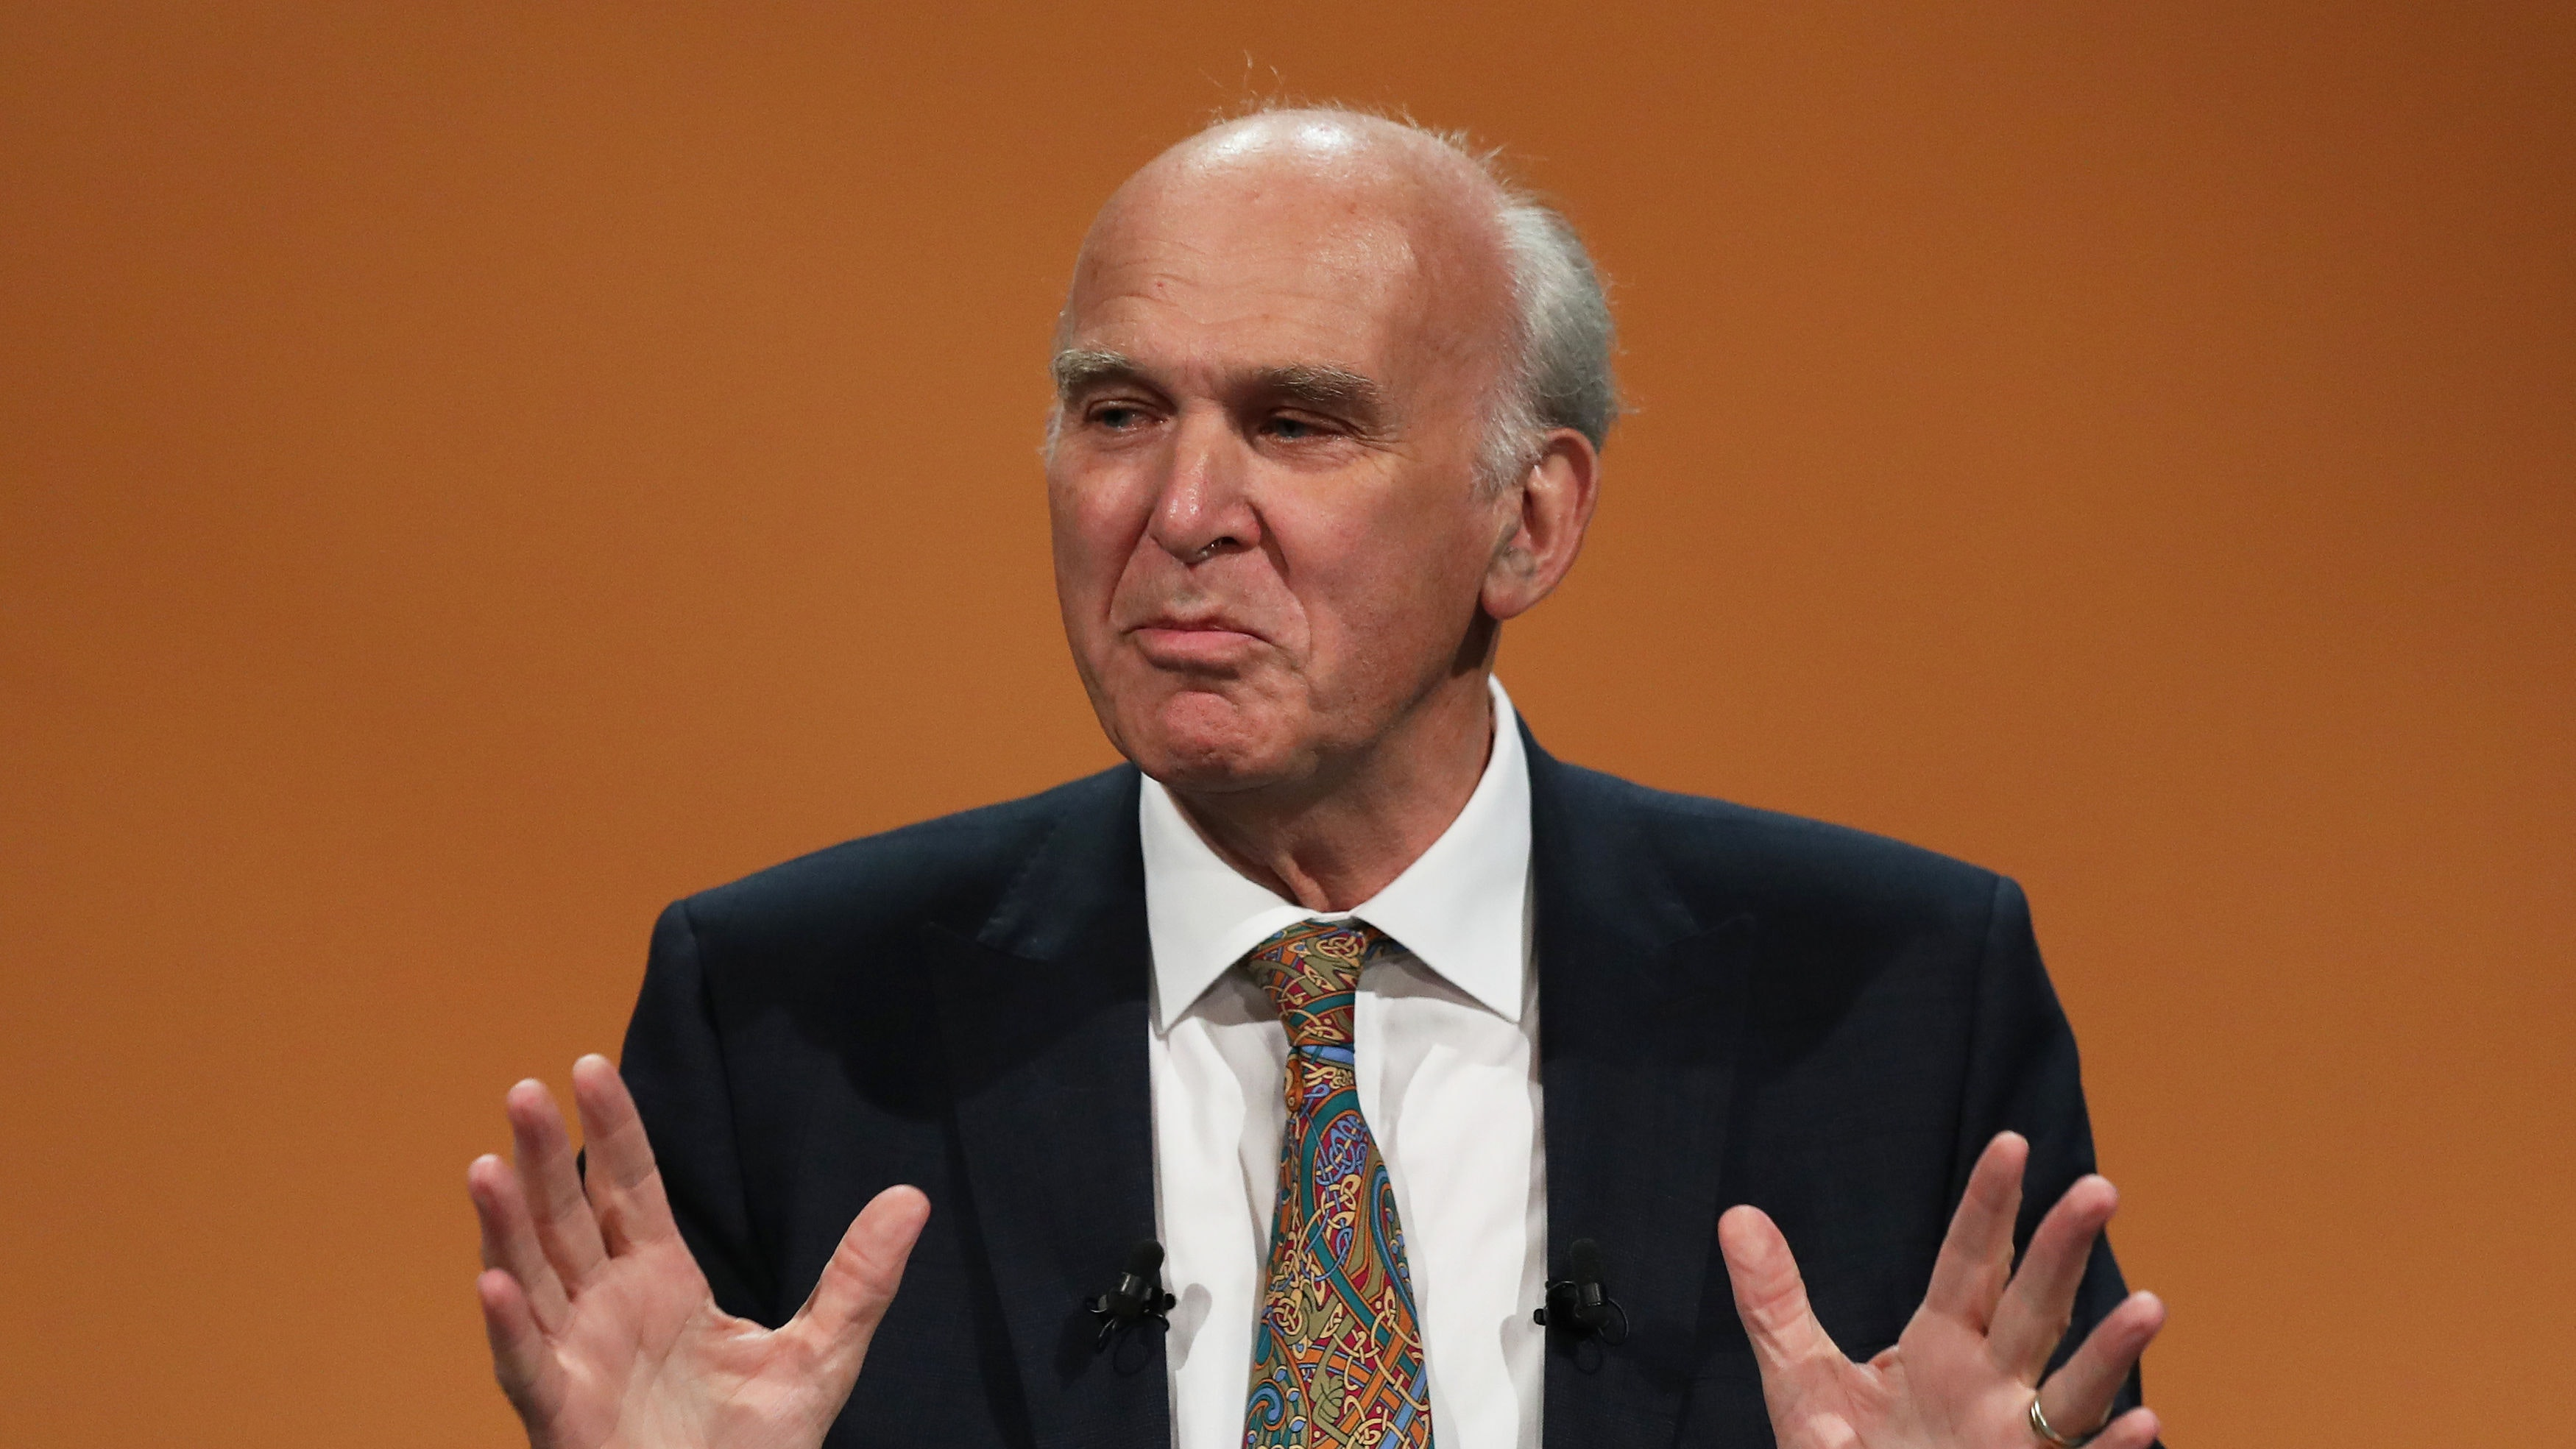 Lib Dem Leader Cable: Brexit Vote Was 'White Nostalgia' of Old Voters